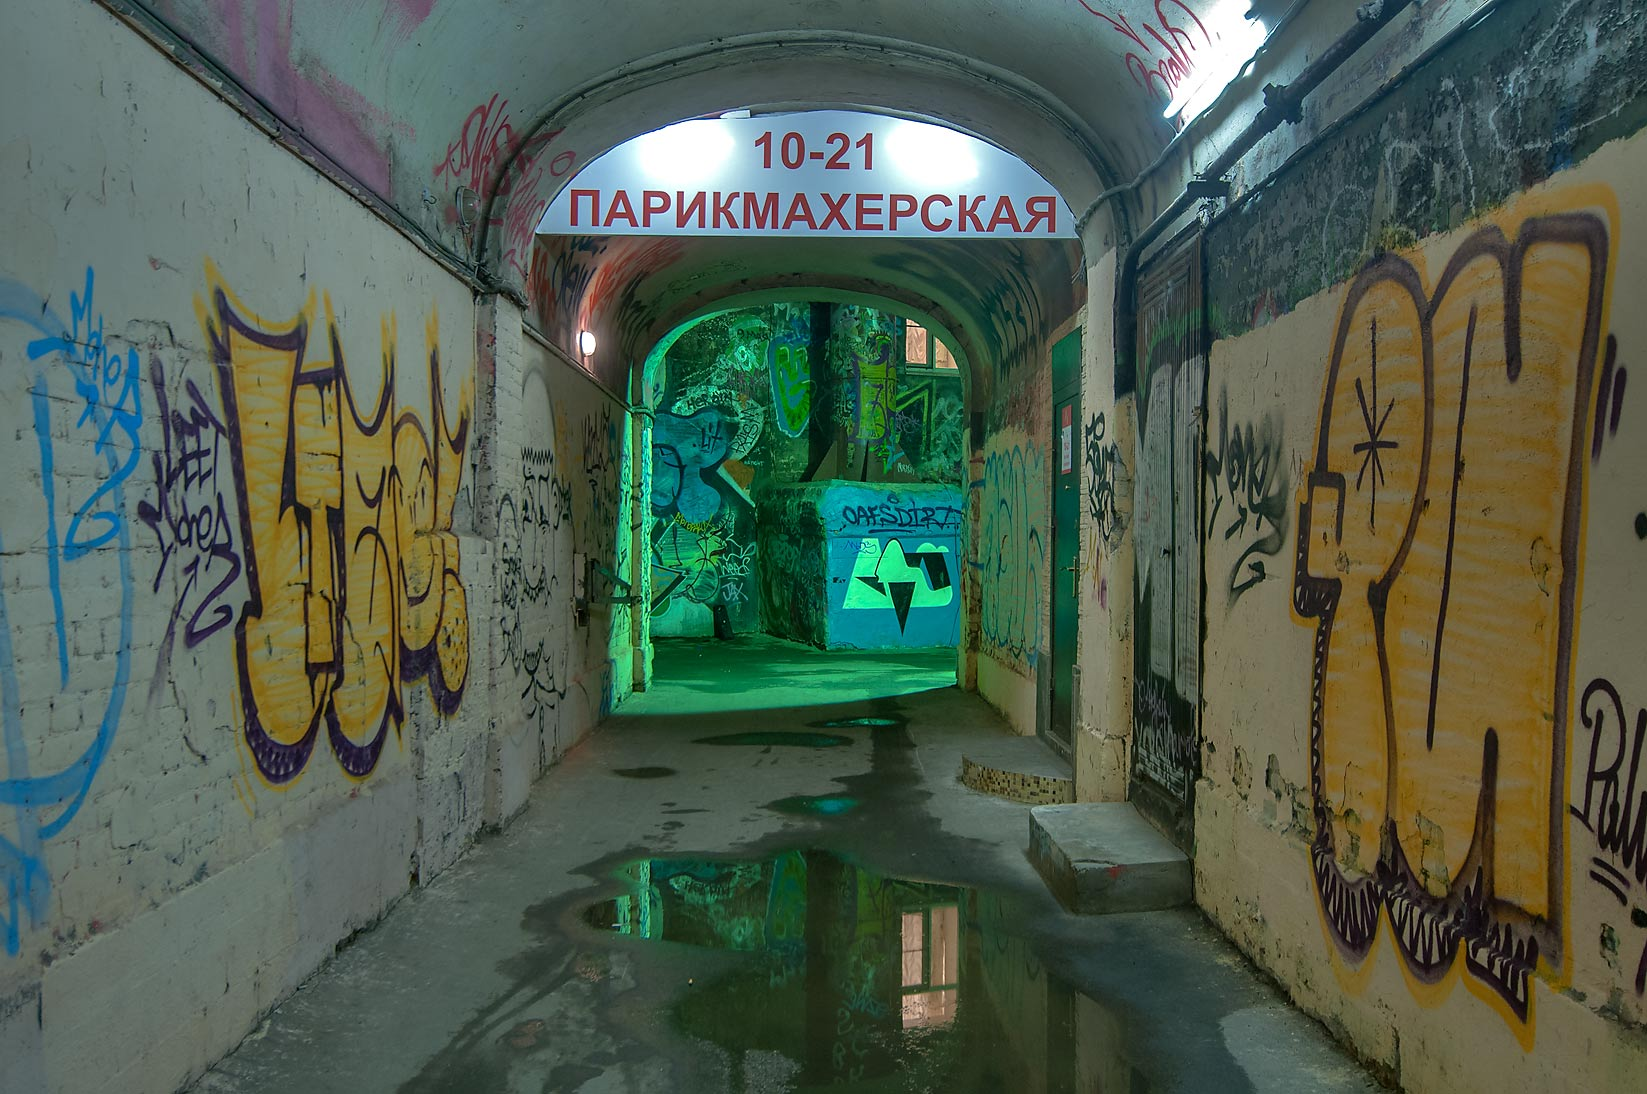 Passage to a yard on Liteyny Prospect. St.Petersburg, Russia